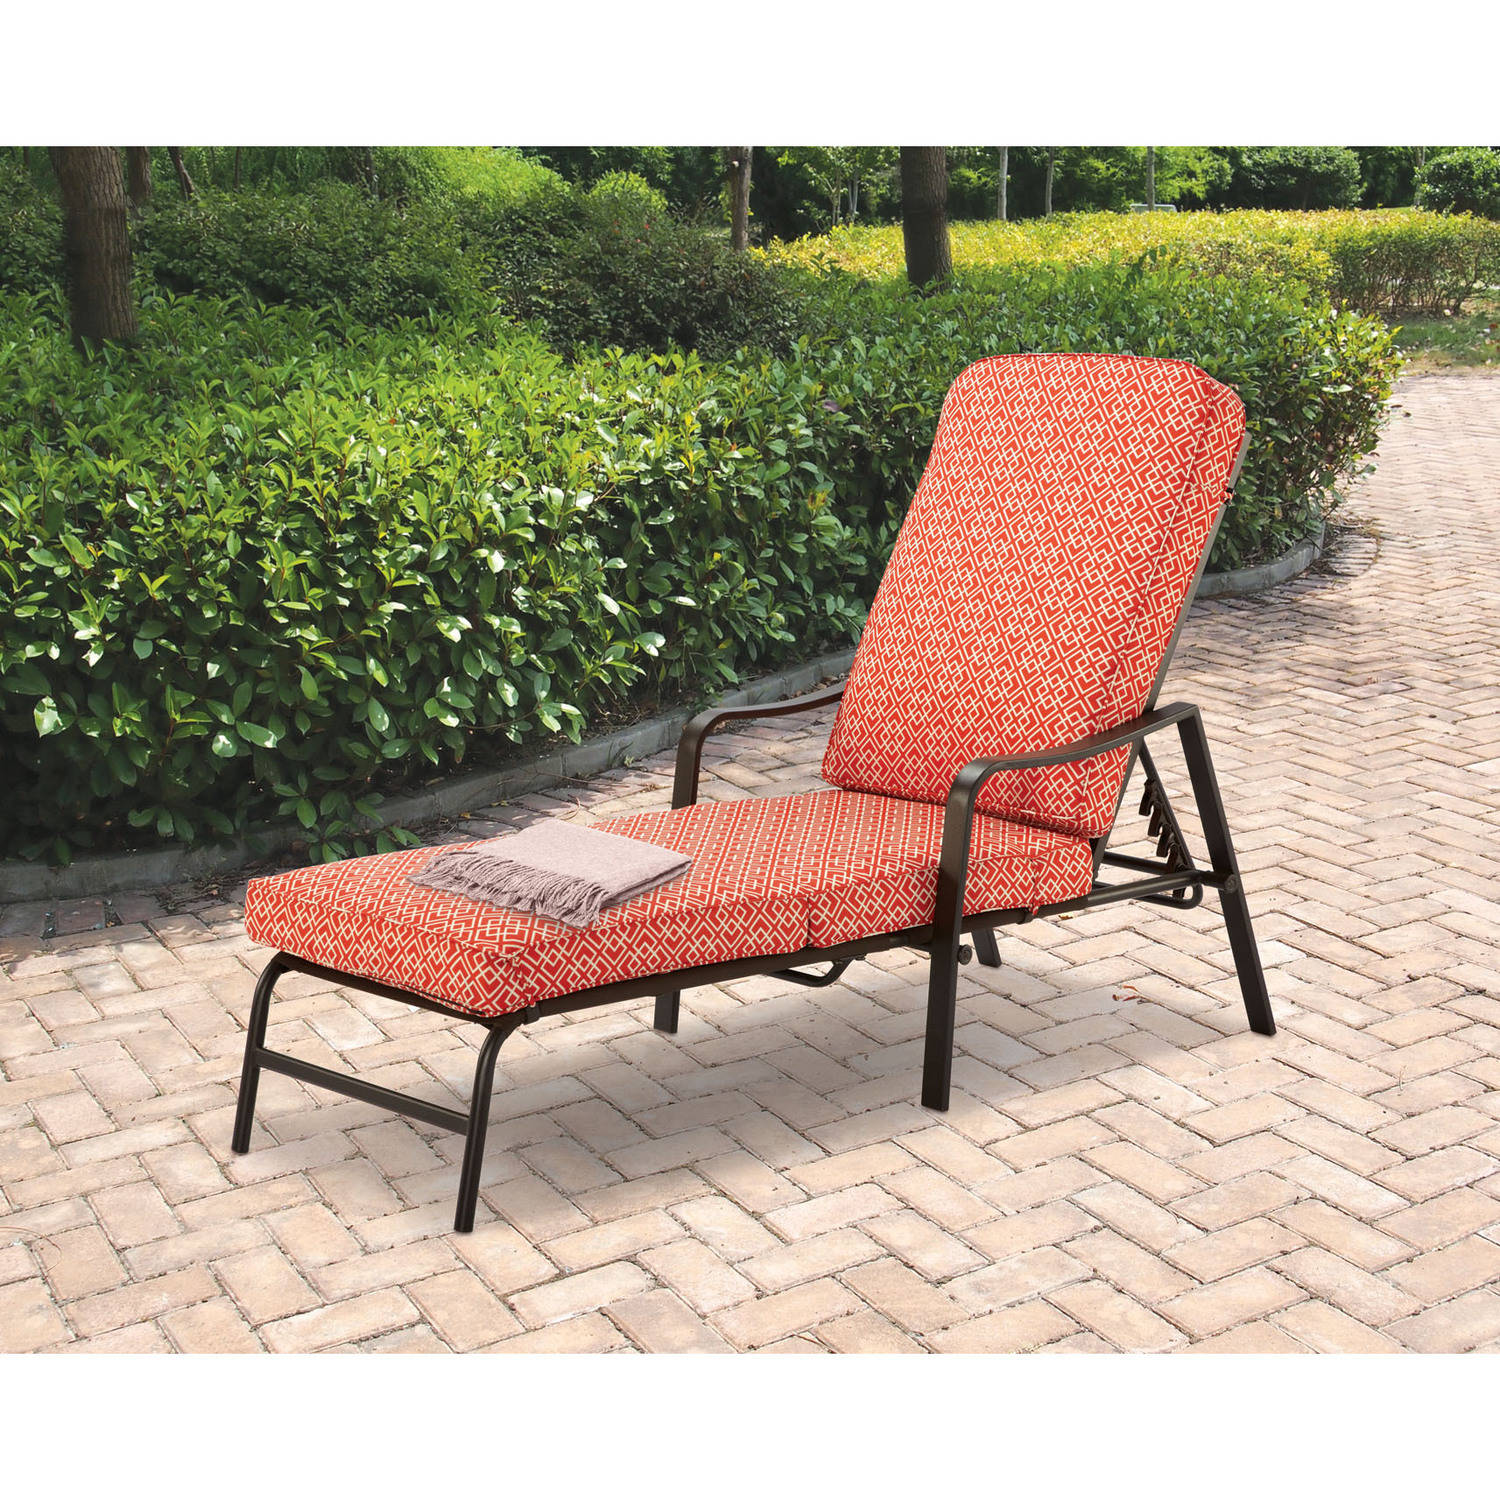 Mainstays Chaise Lounge Orange Geo Pattern Walmart